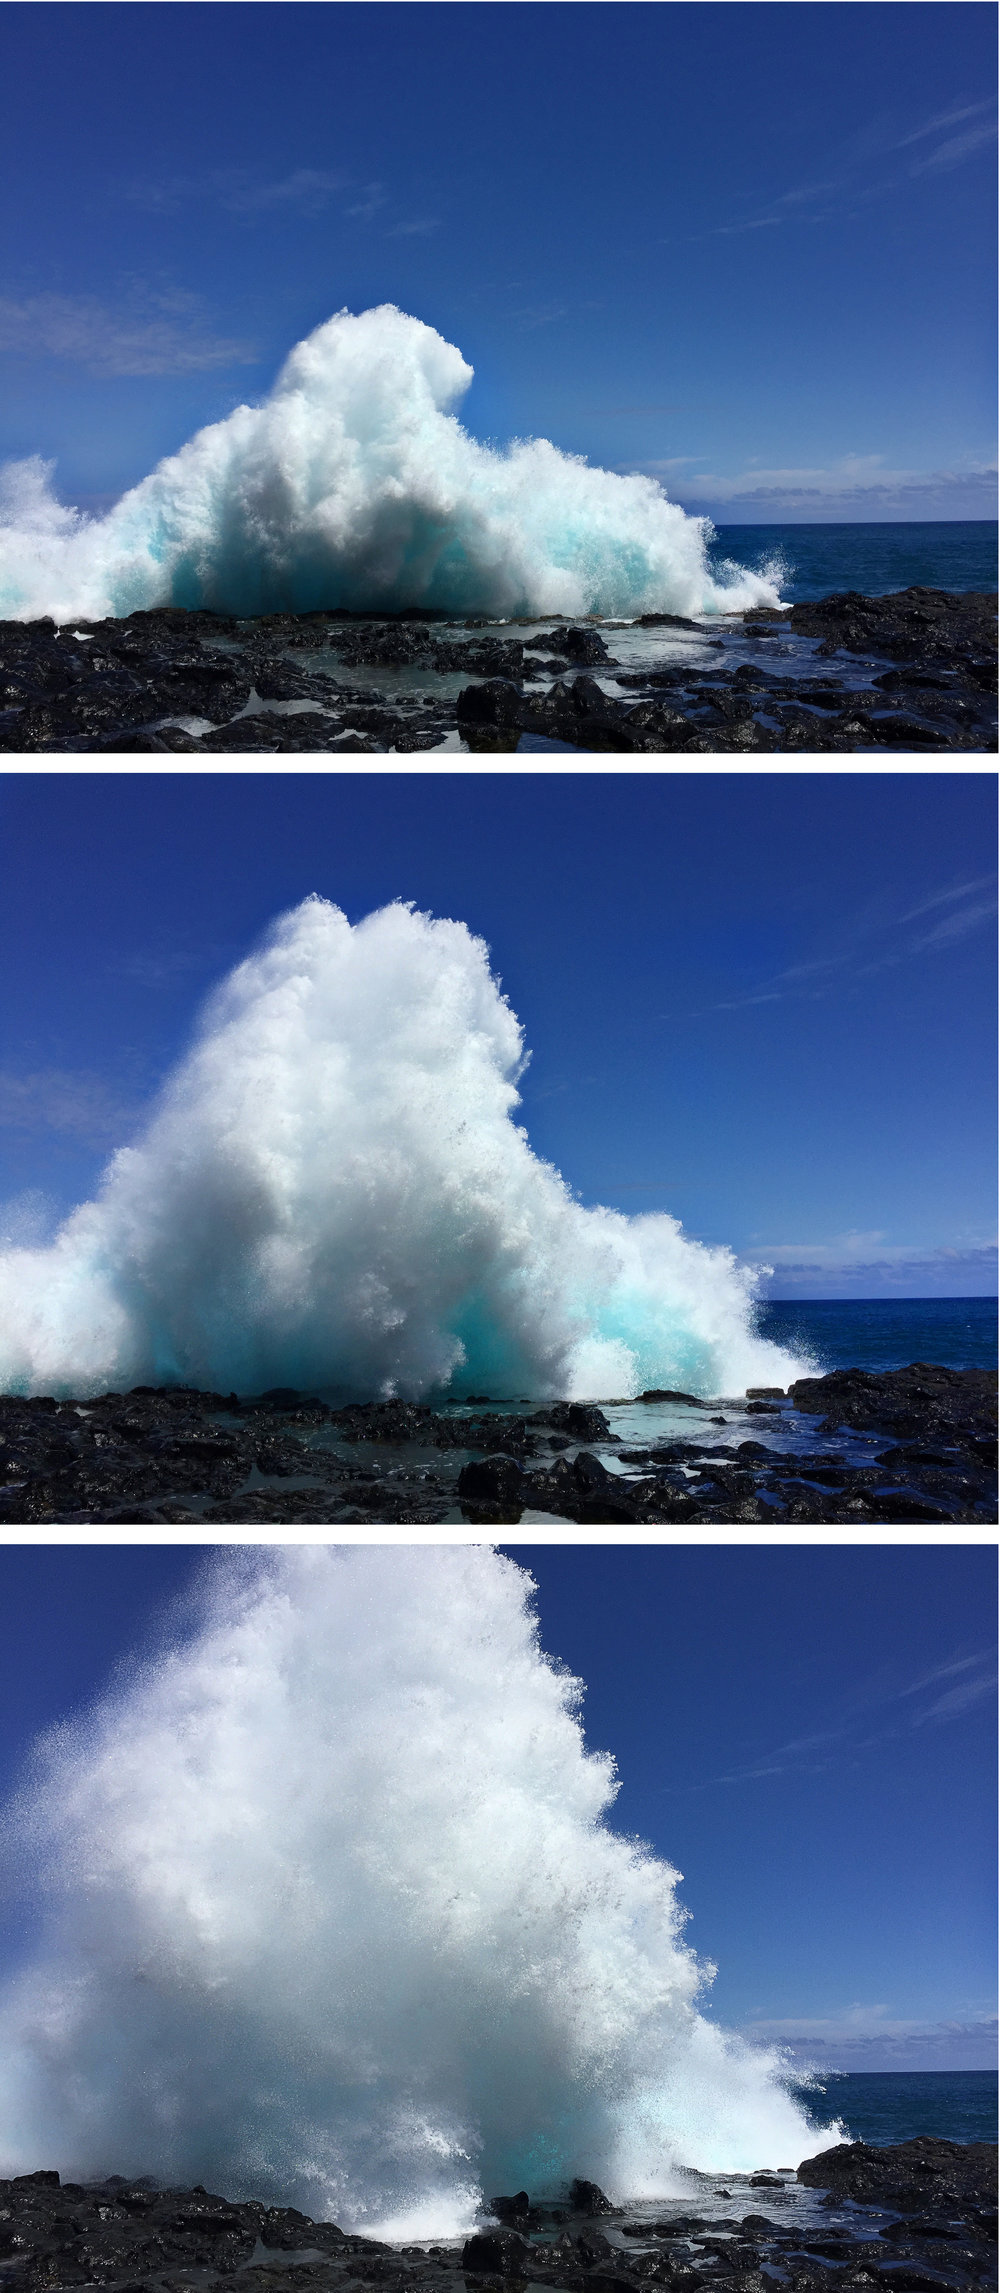 oahu_wave_sequence.jpg